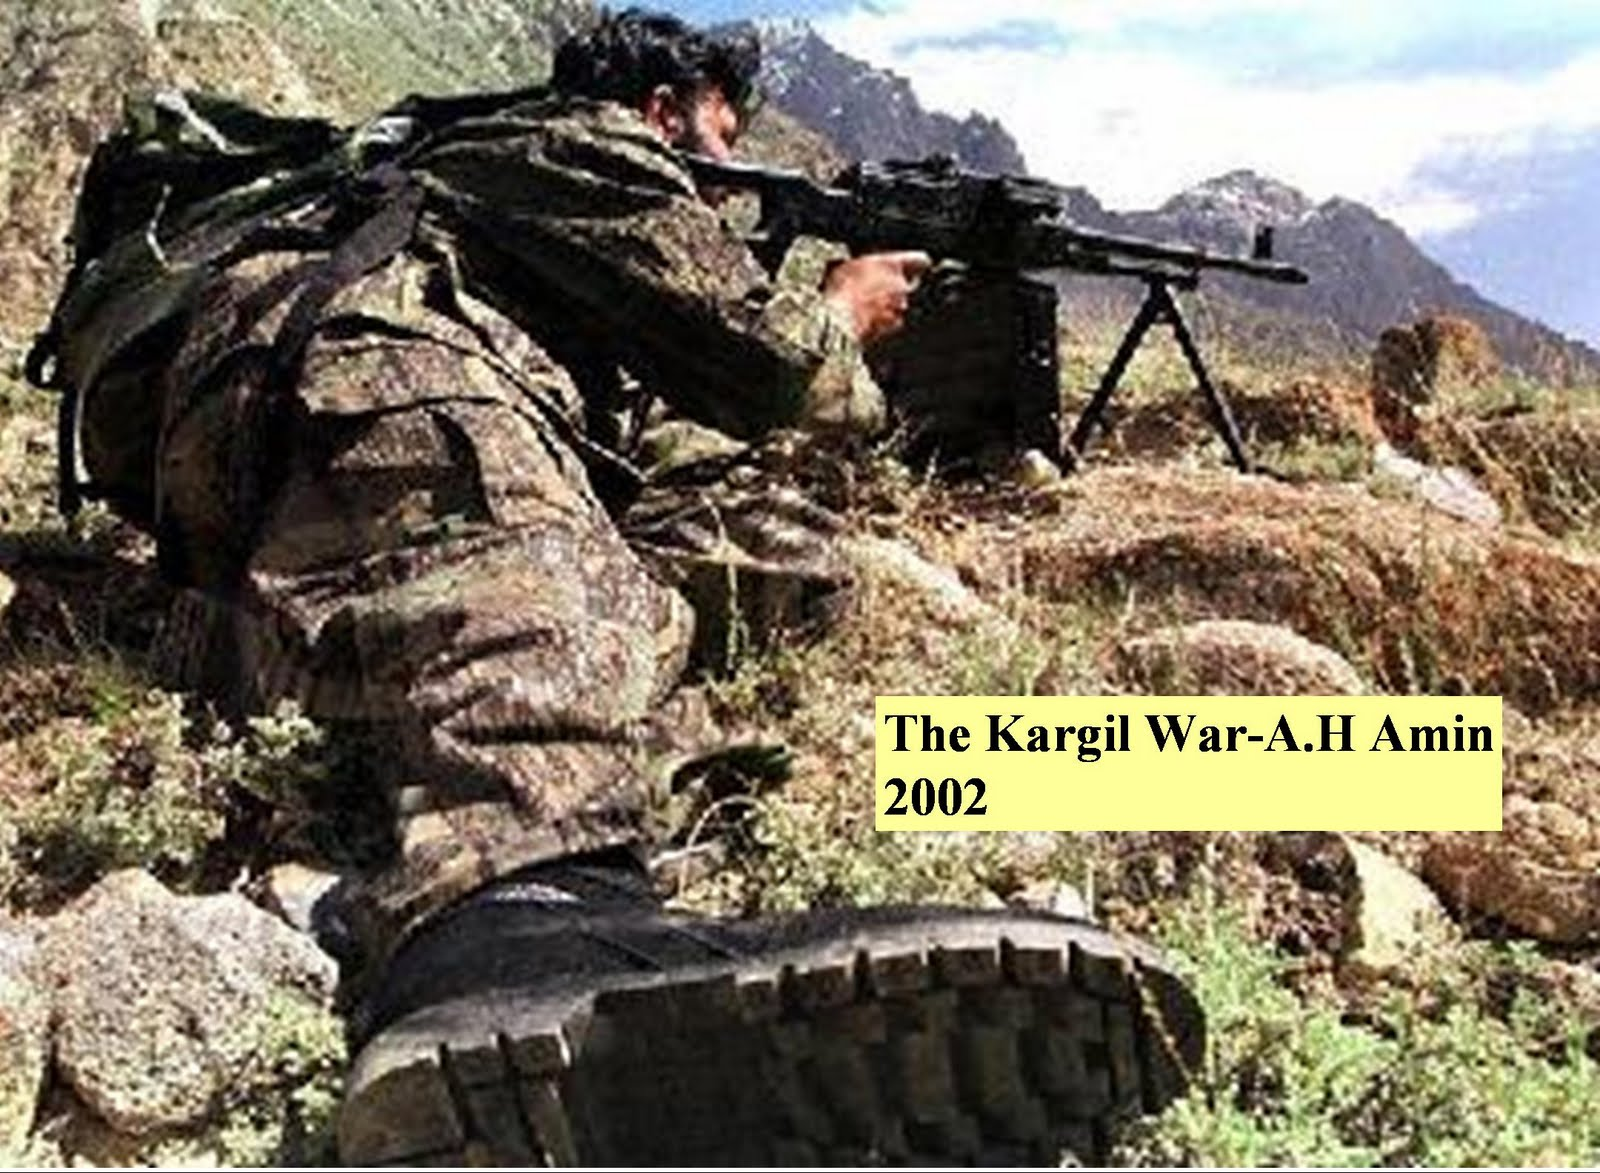 pakistan india and the kargil war politics essay • kargil was india's first televised war india dexterously made use  abad has concluded that the use of pakistani troops in kargil invited political failure.